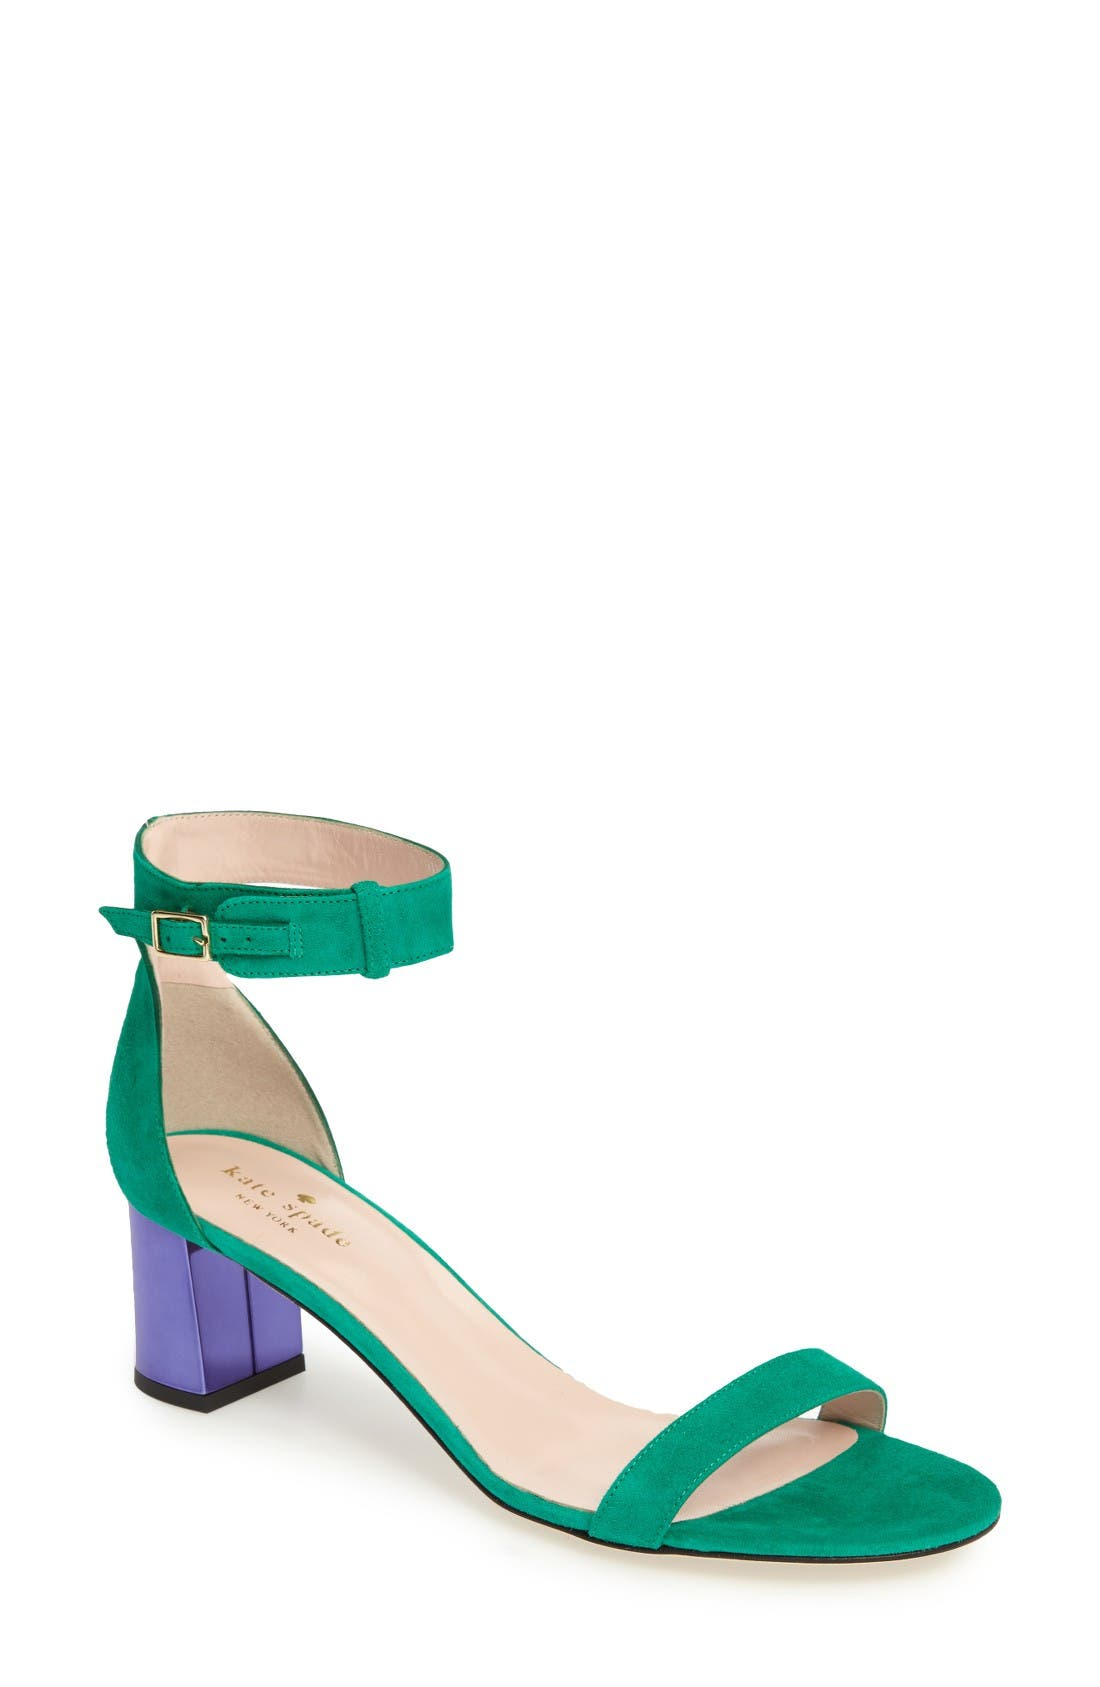 Alternate Image 1 Selected - kate spade new york menorca ankle strap sandal (Women)